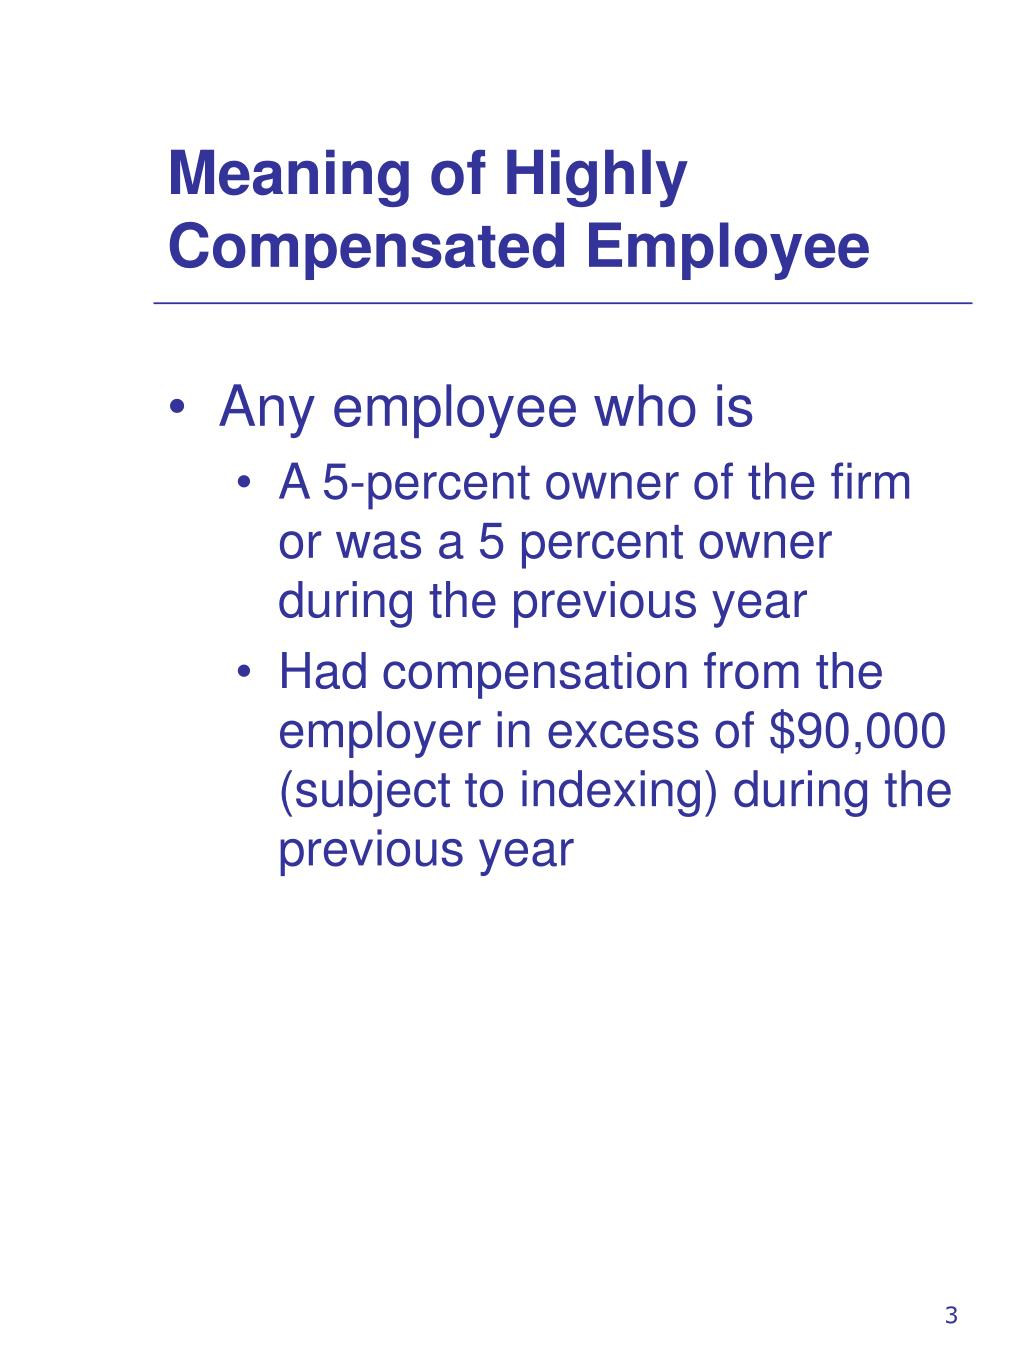 Meaning of Highly Compensated Employee